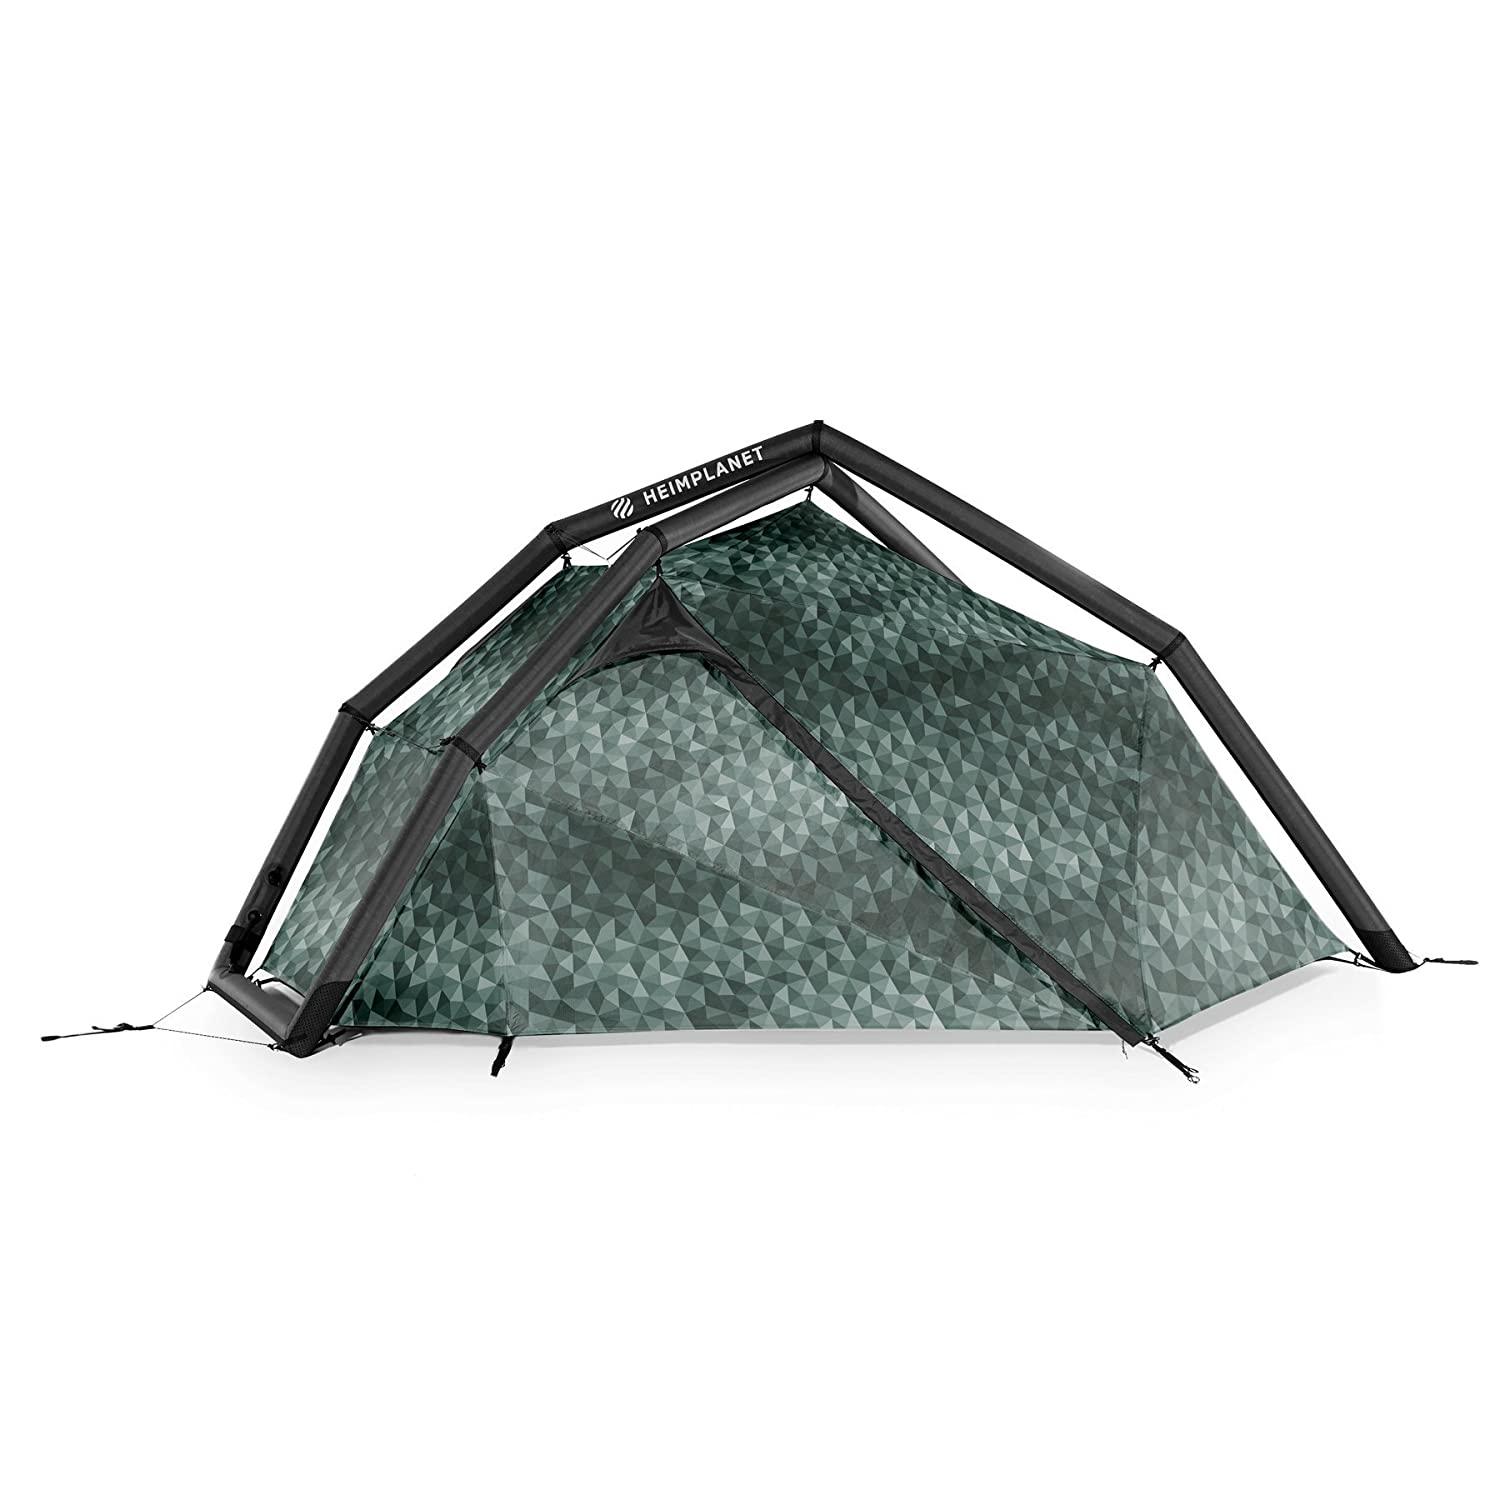 Amazon.com : Heimplanet Fistral Inflatable Geodesic 2-Person 3 ...